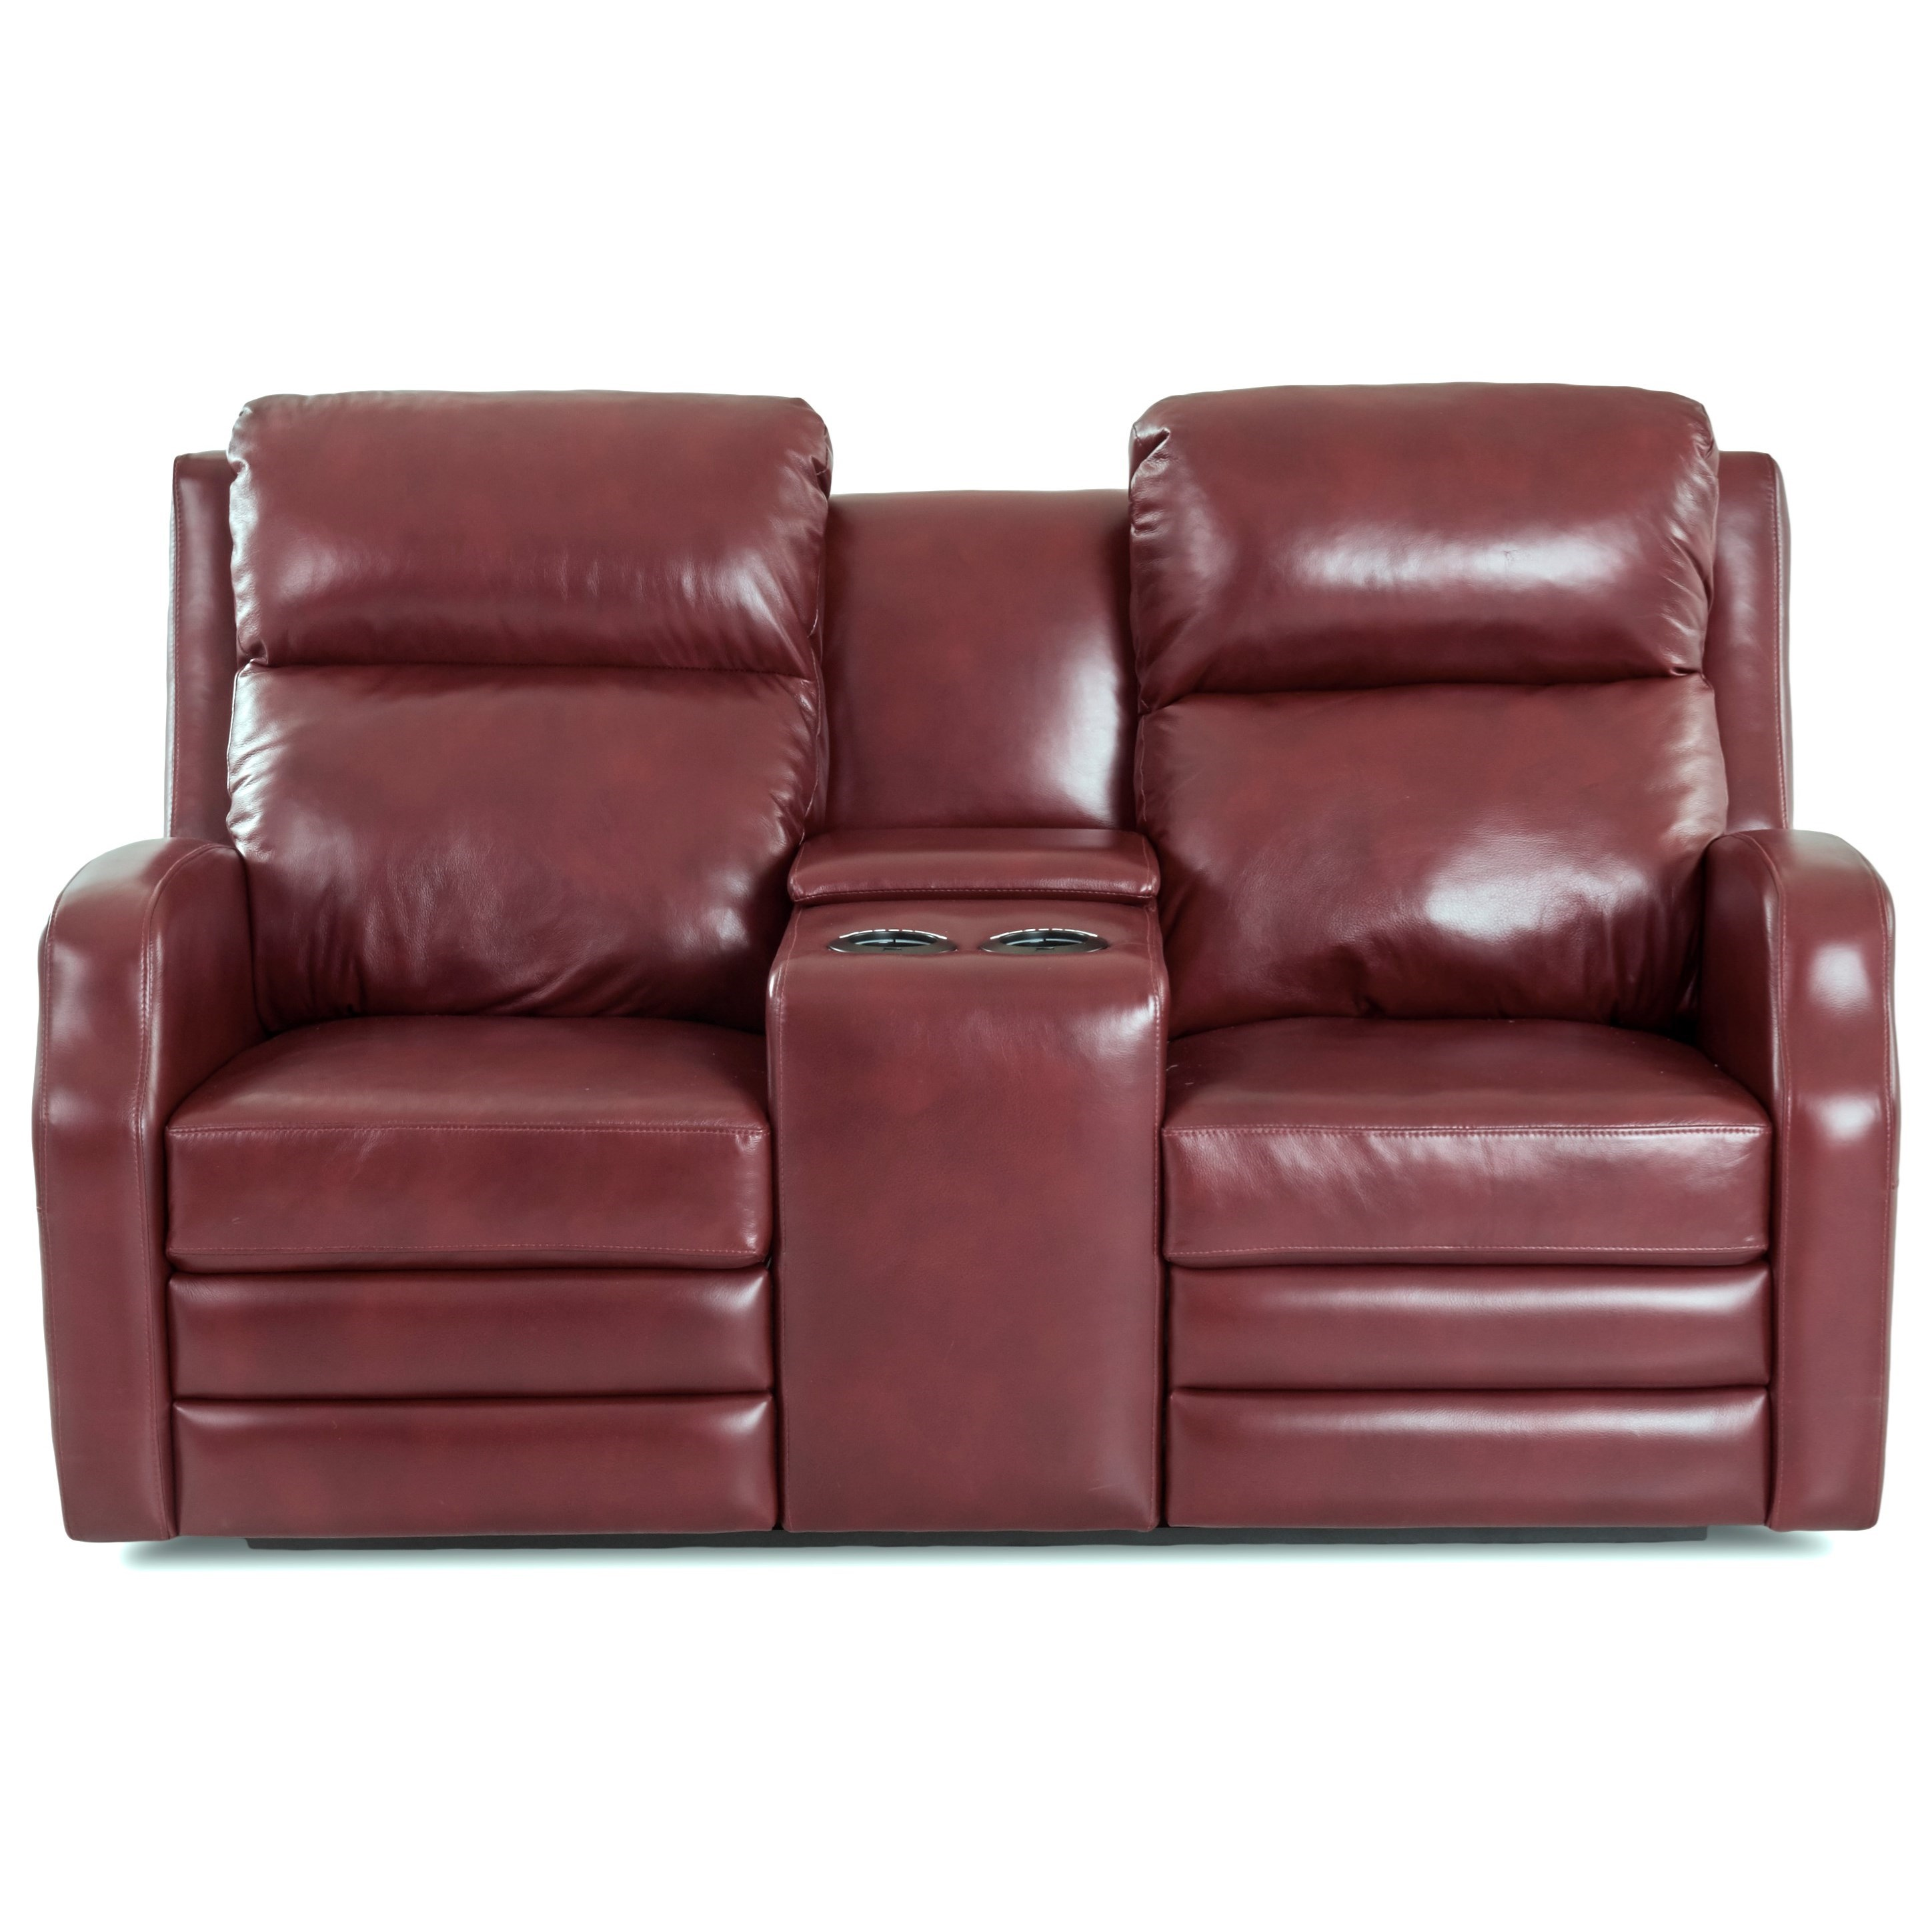 Power Console Reclining Loveseat with USB Charging Ports and Power Headrests / Lumbar